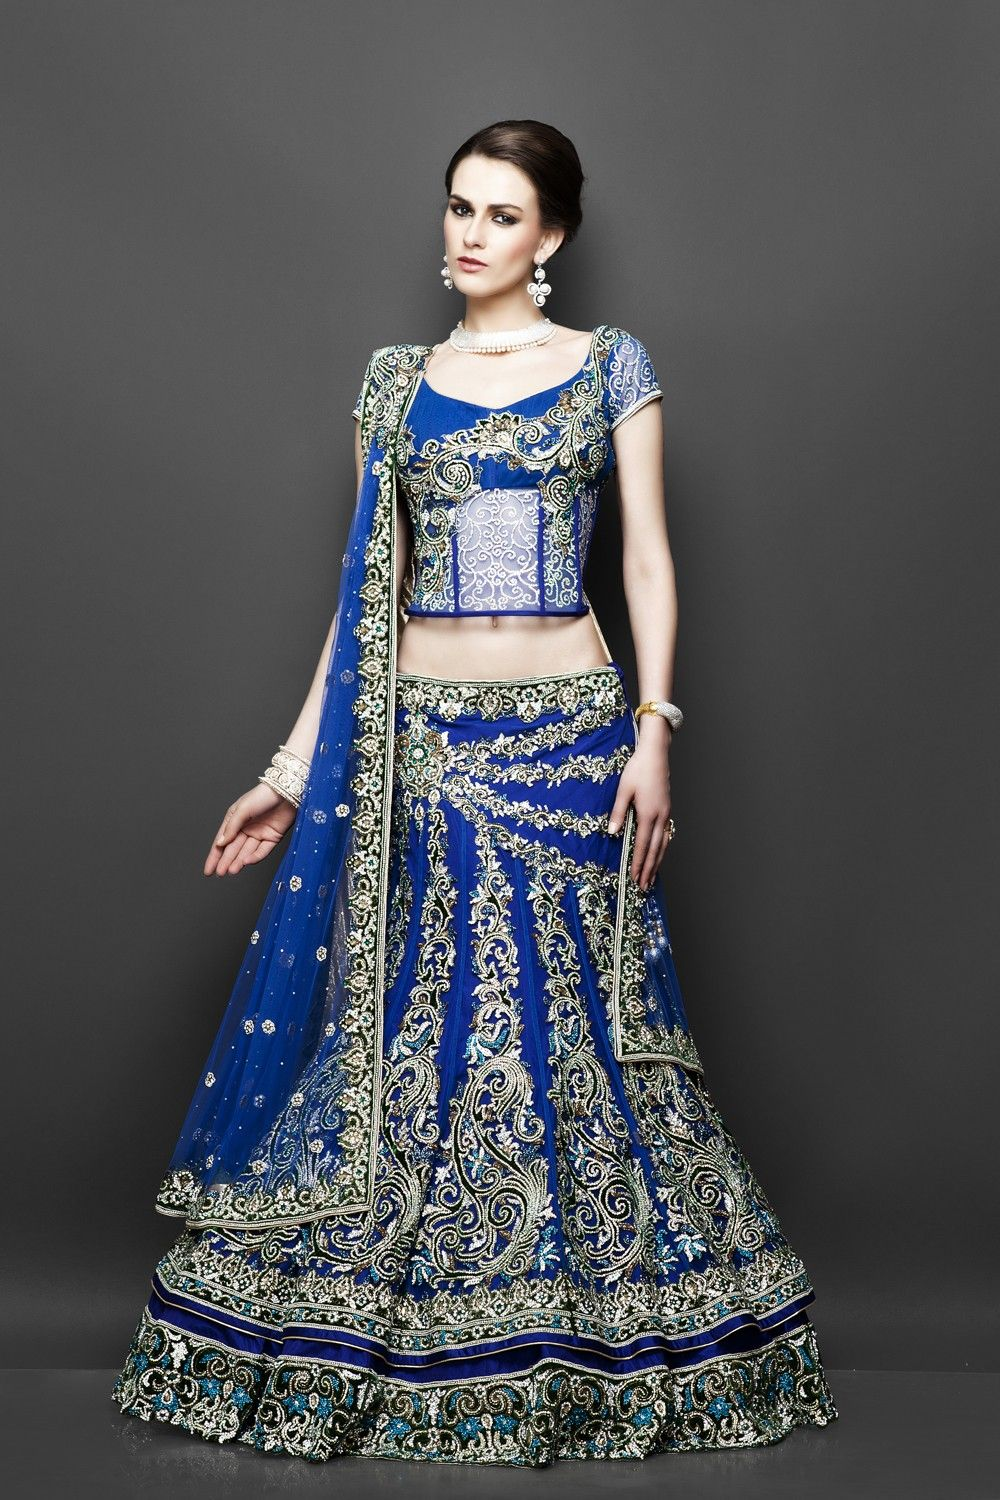 Blue double layered net outfit with green velvet outfits